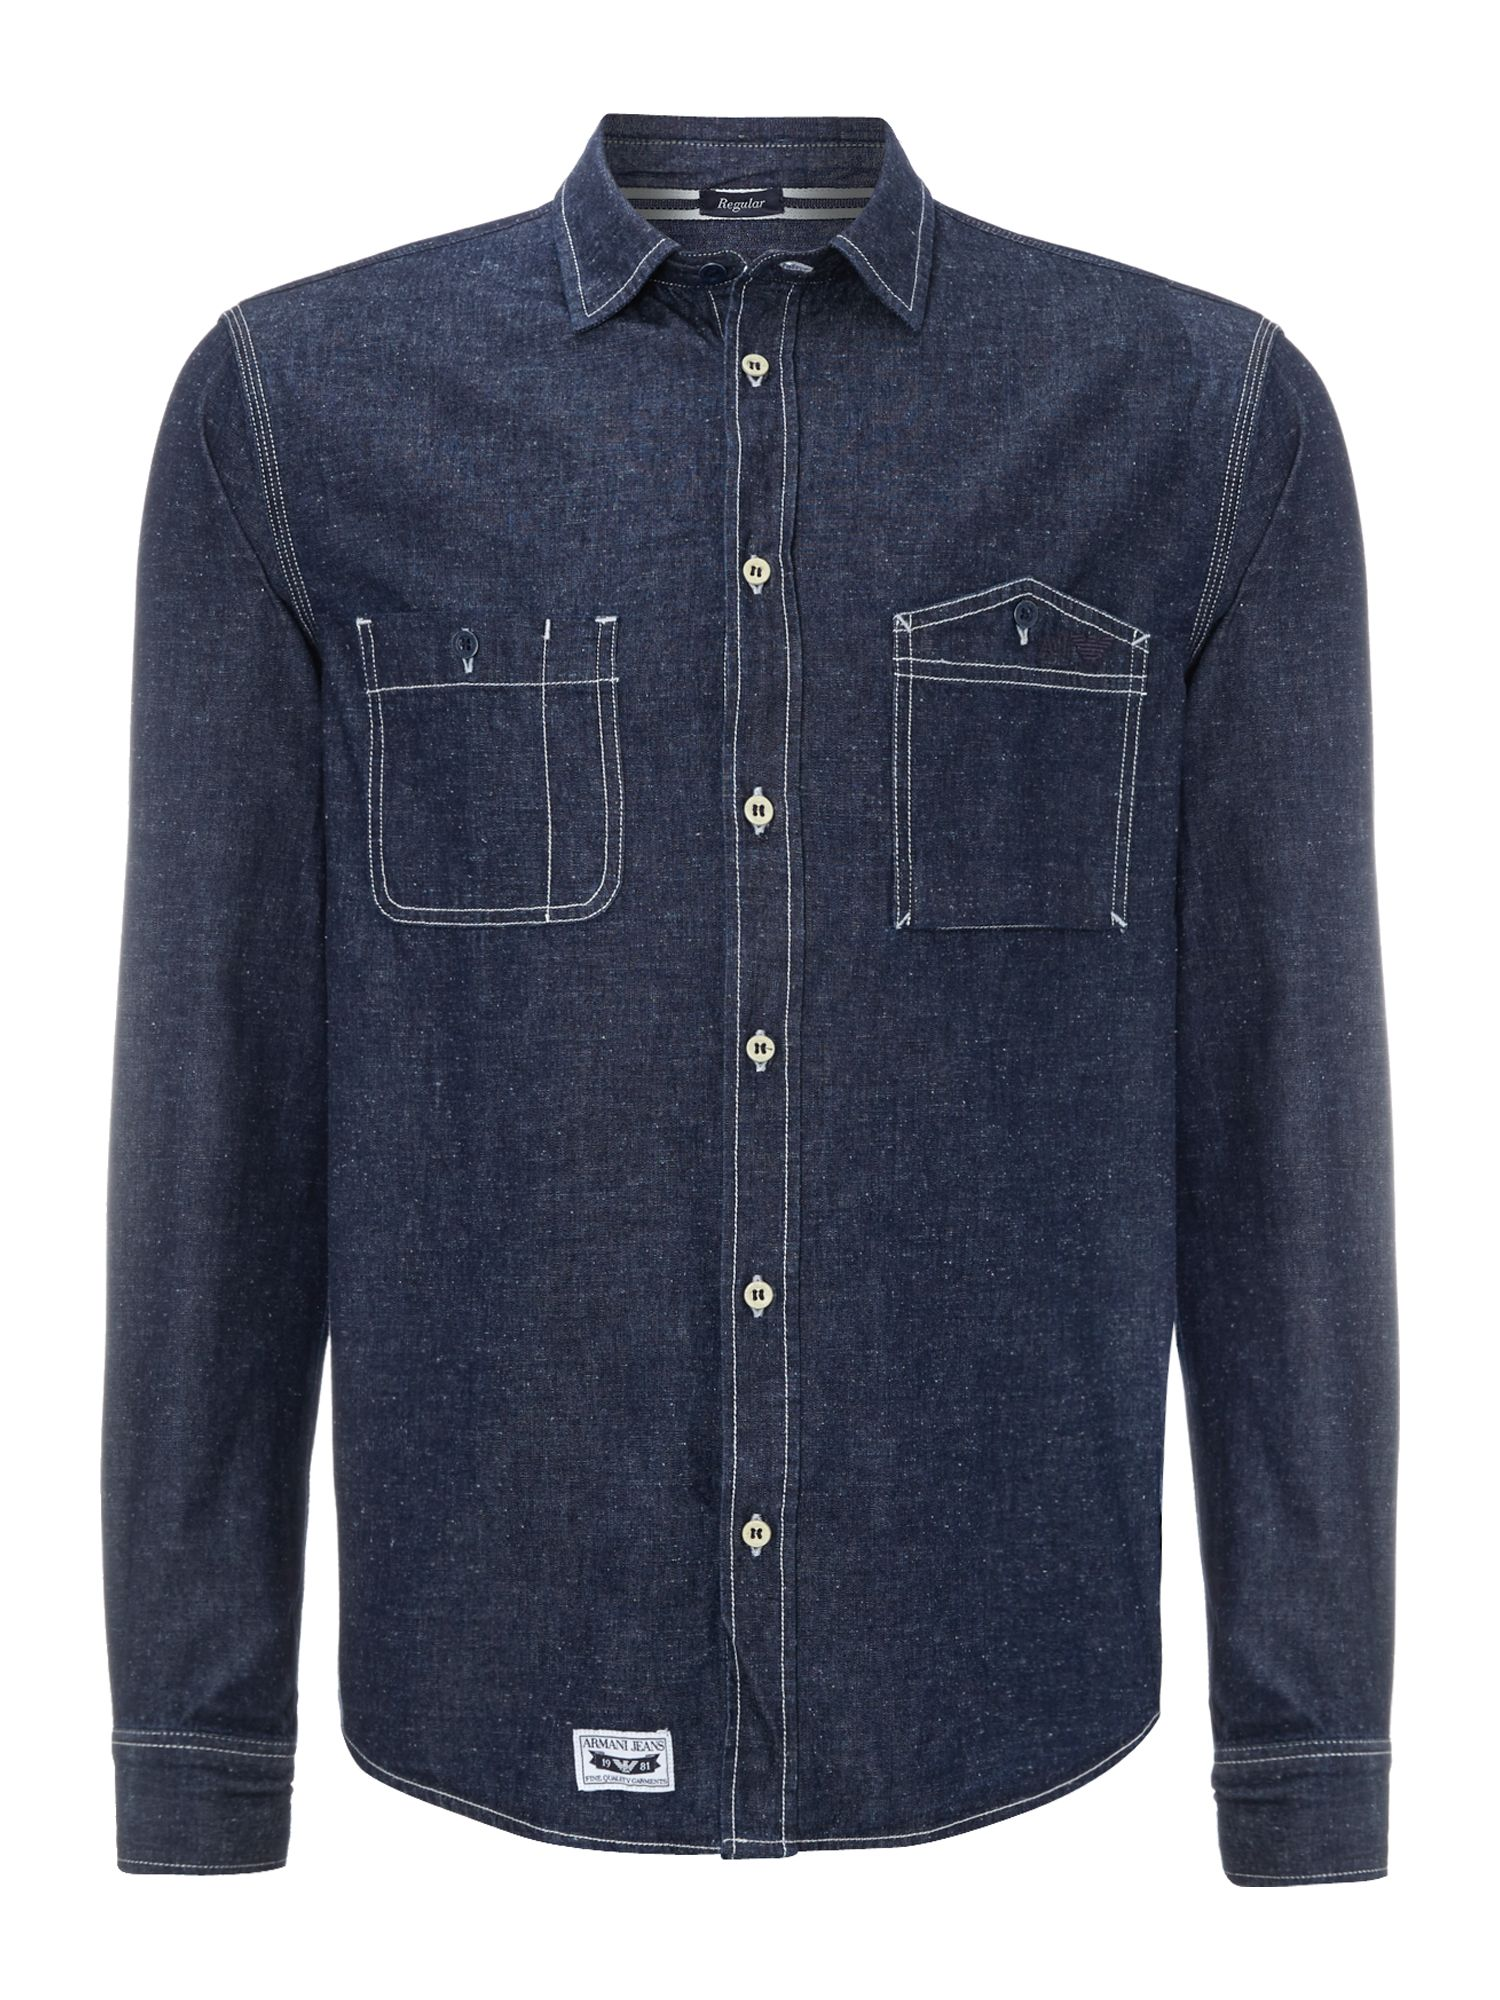 2 pocket flecked denim shirt